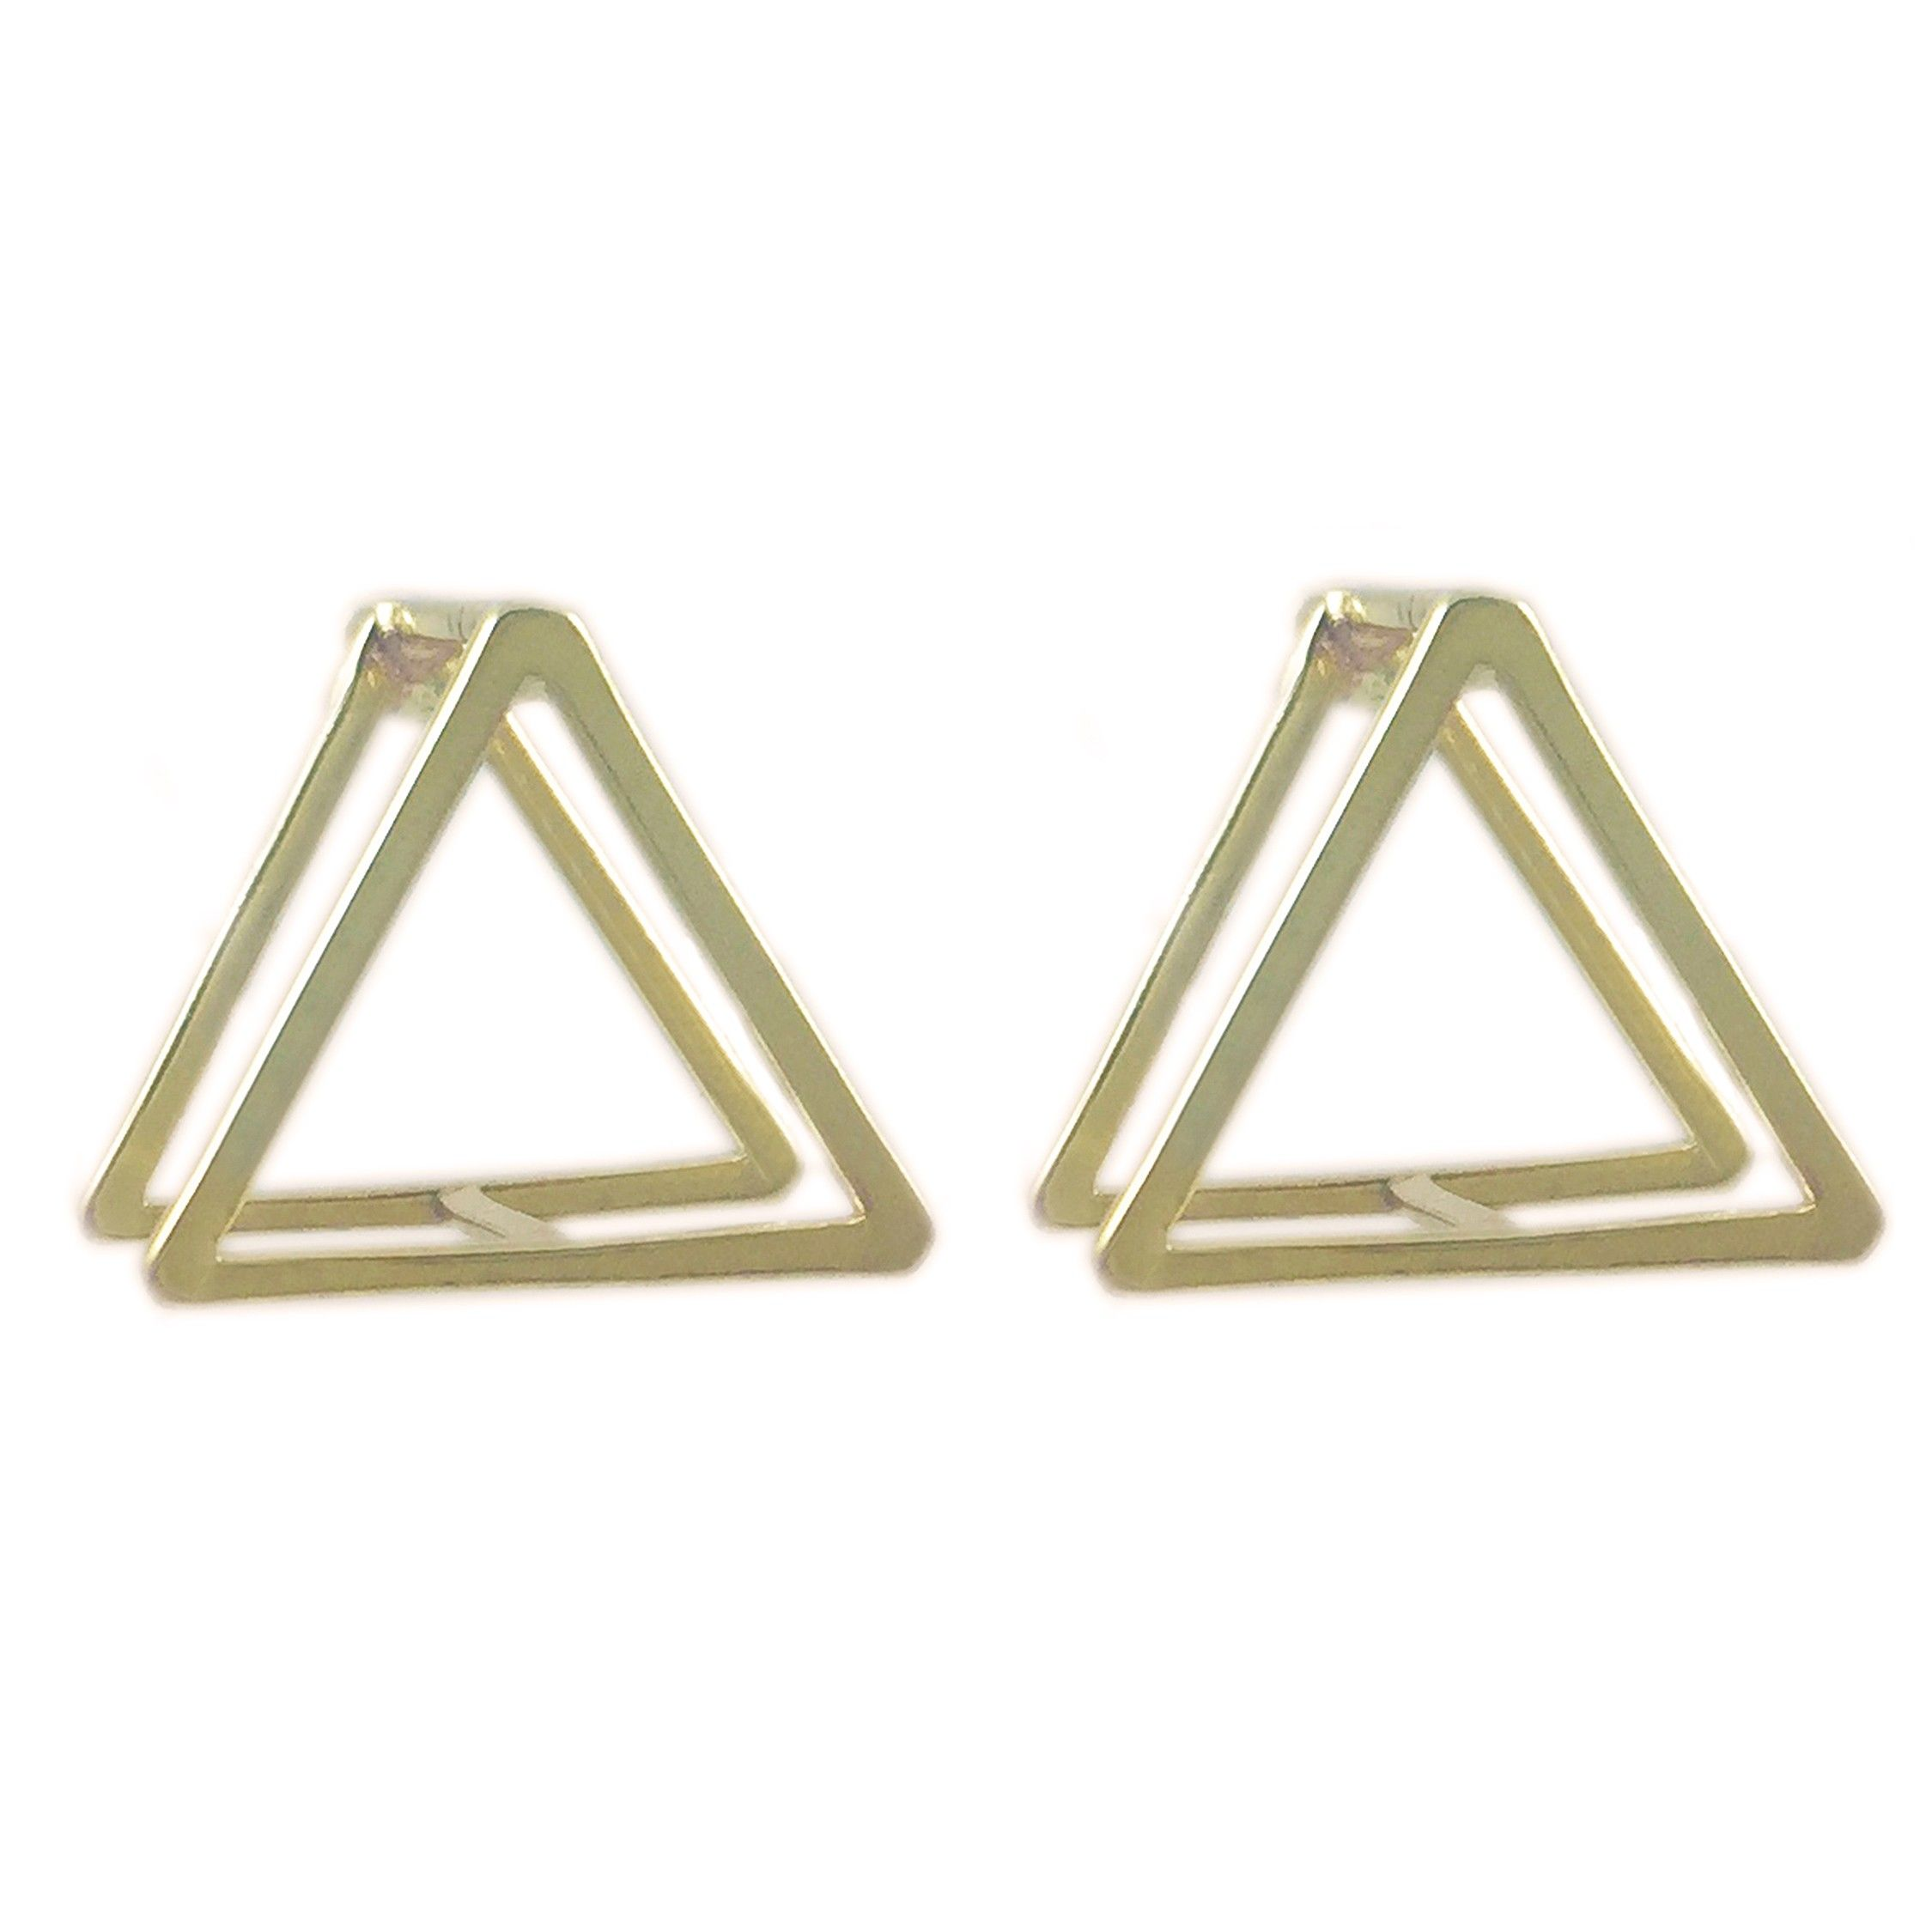 haunted img mrinalinichandra the lighthouse architecture products earring earrings